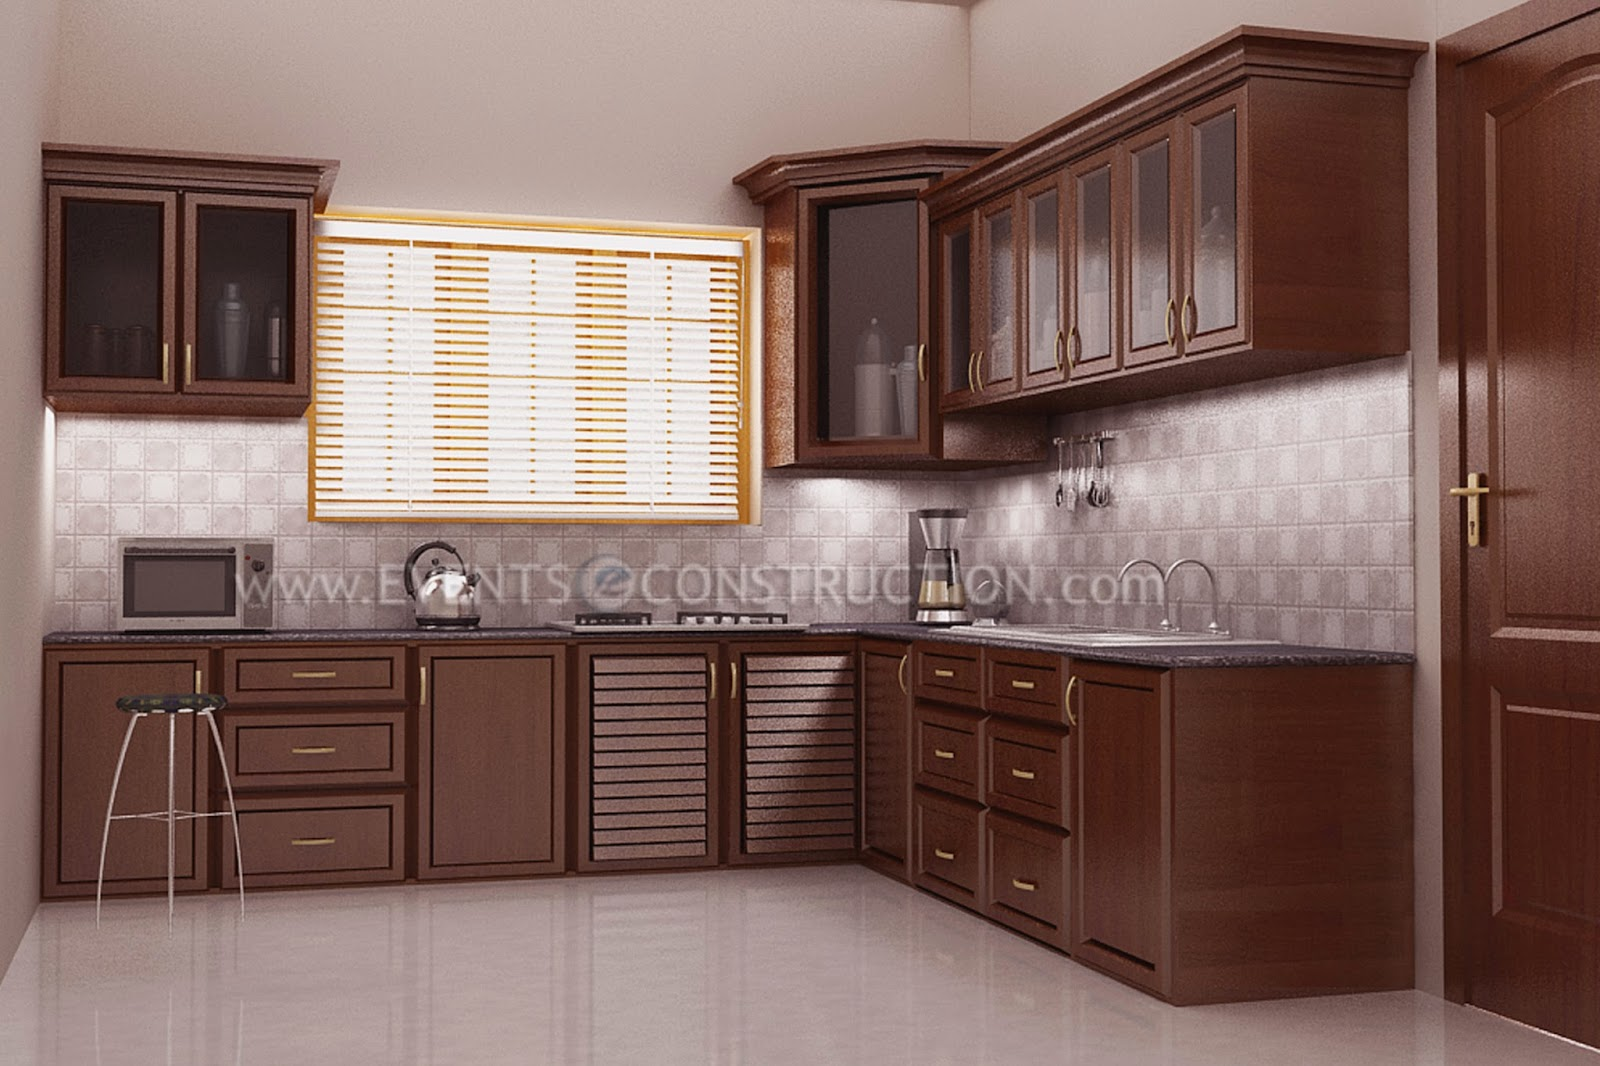 House Kitchen Model Of Evens Construction Pvt Ltd Kitchen Design With Wooden